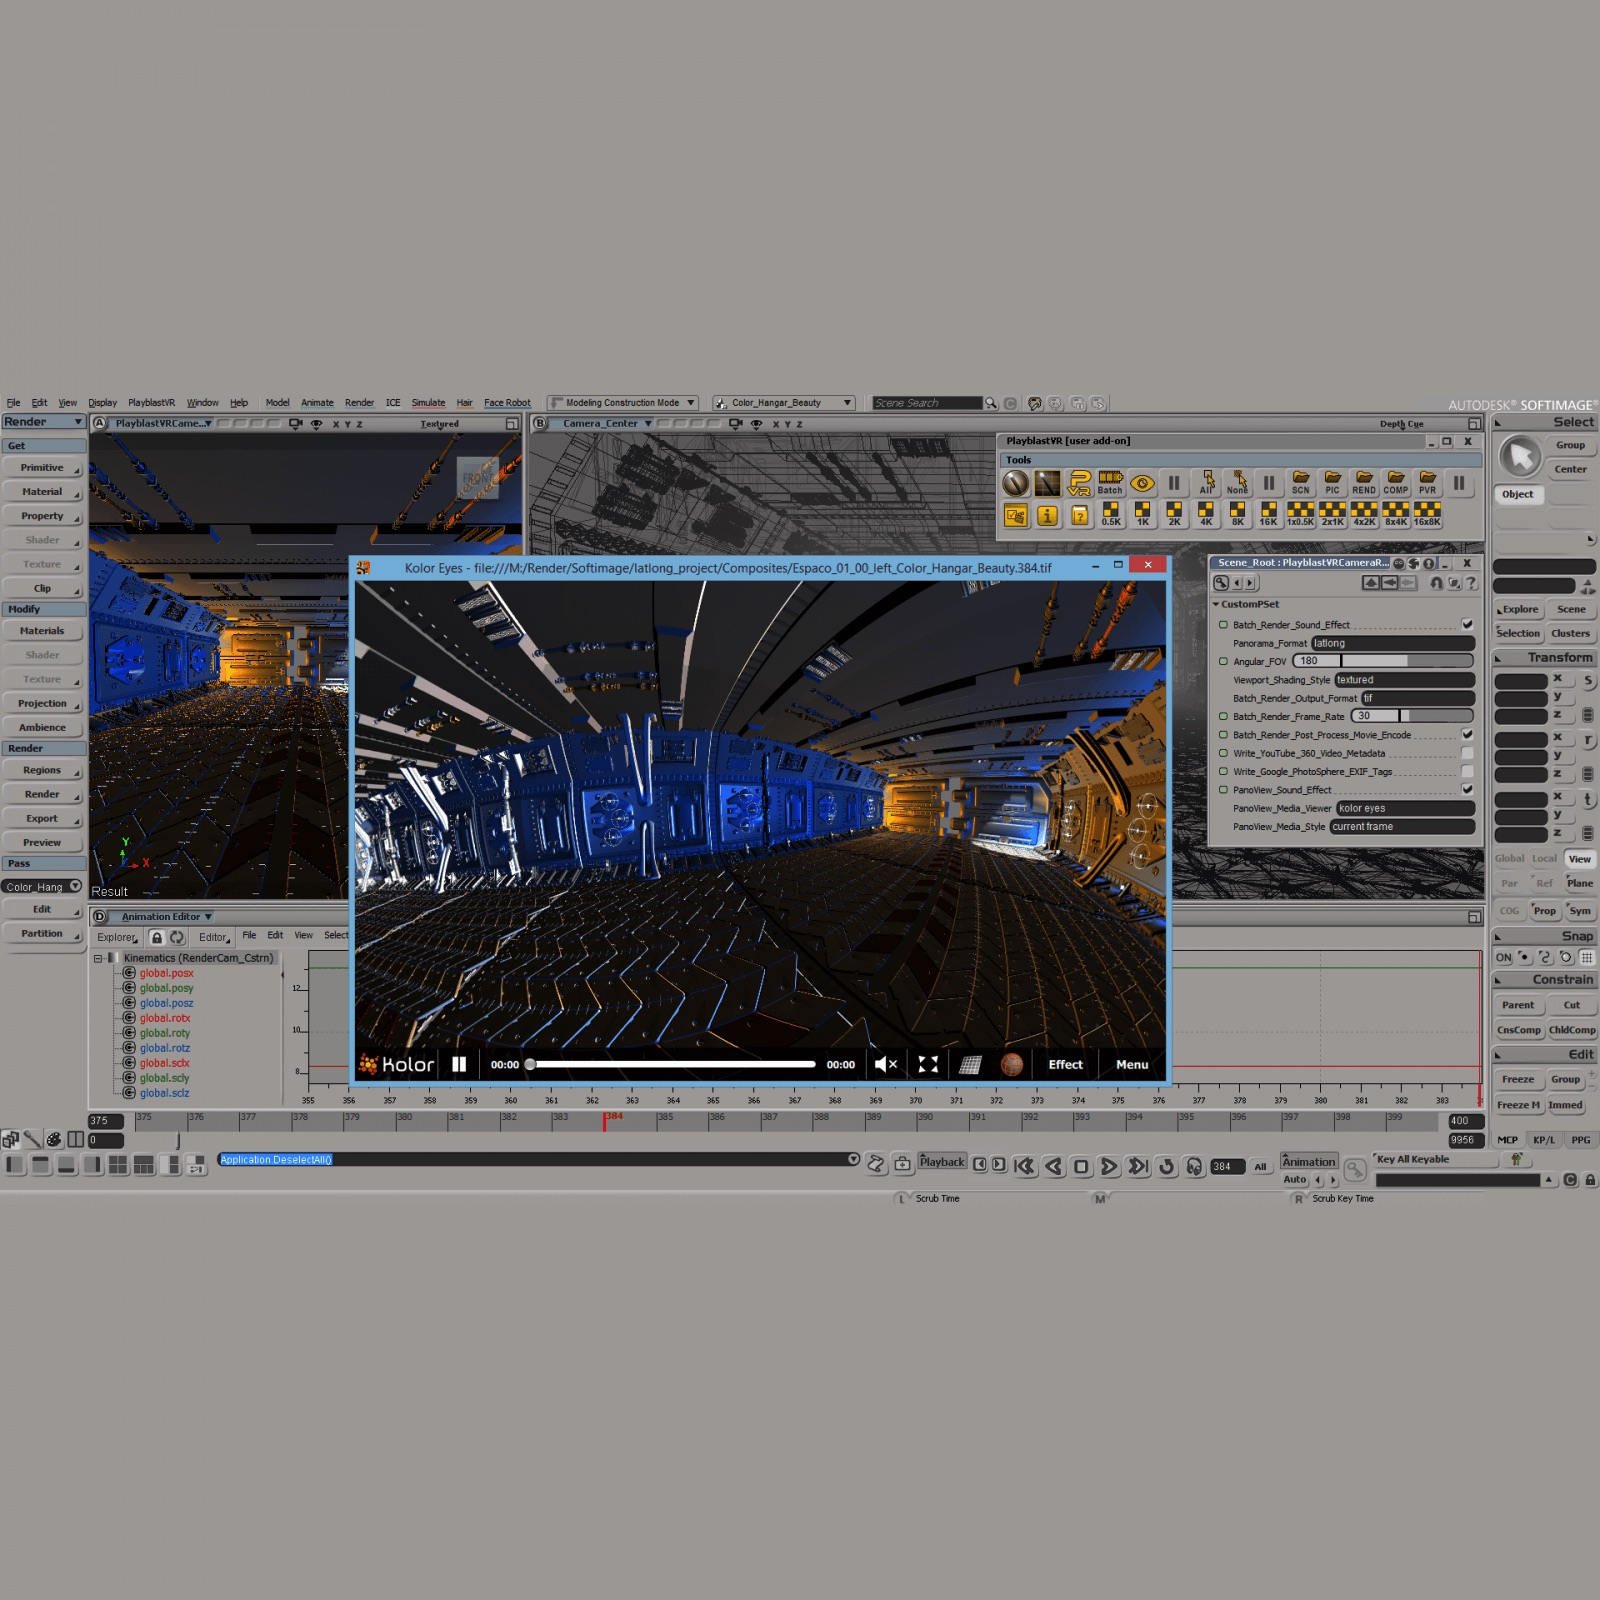 PlayblastVR for Softimage